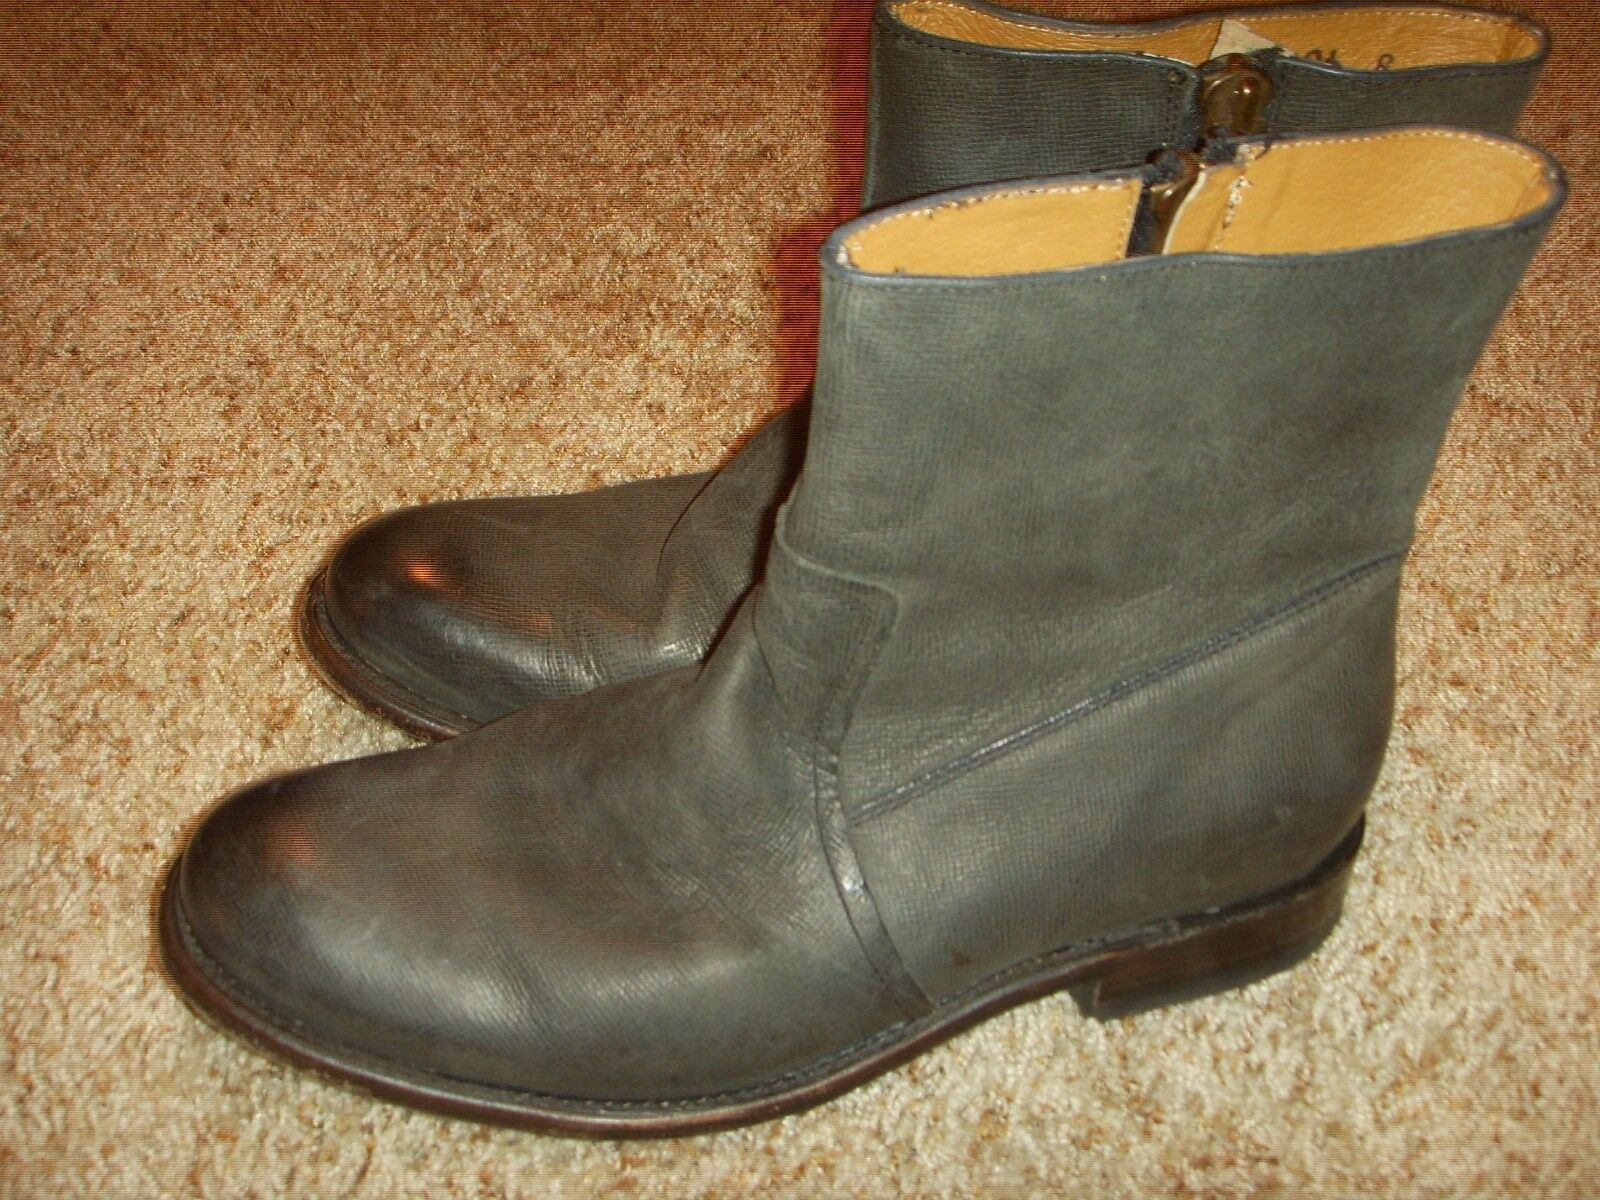 J.D. Fisk Dale Ankle-High Leather Boot Mens Size 8M